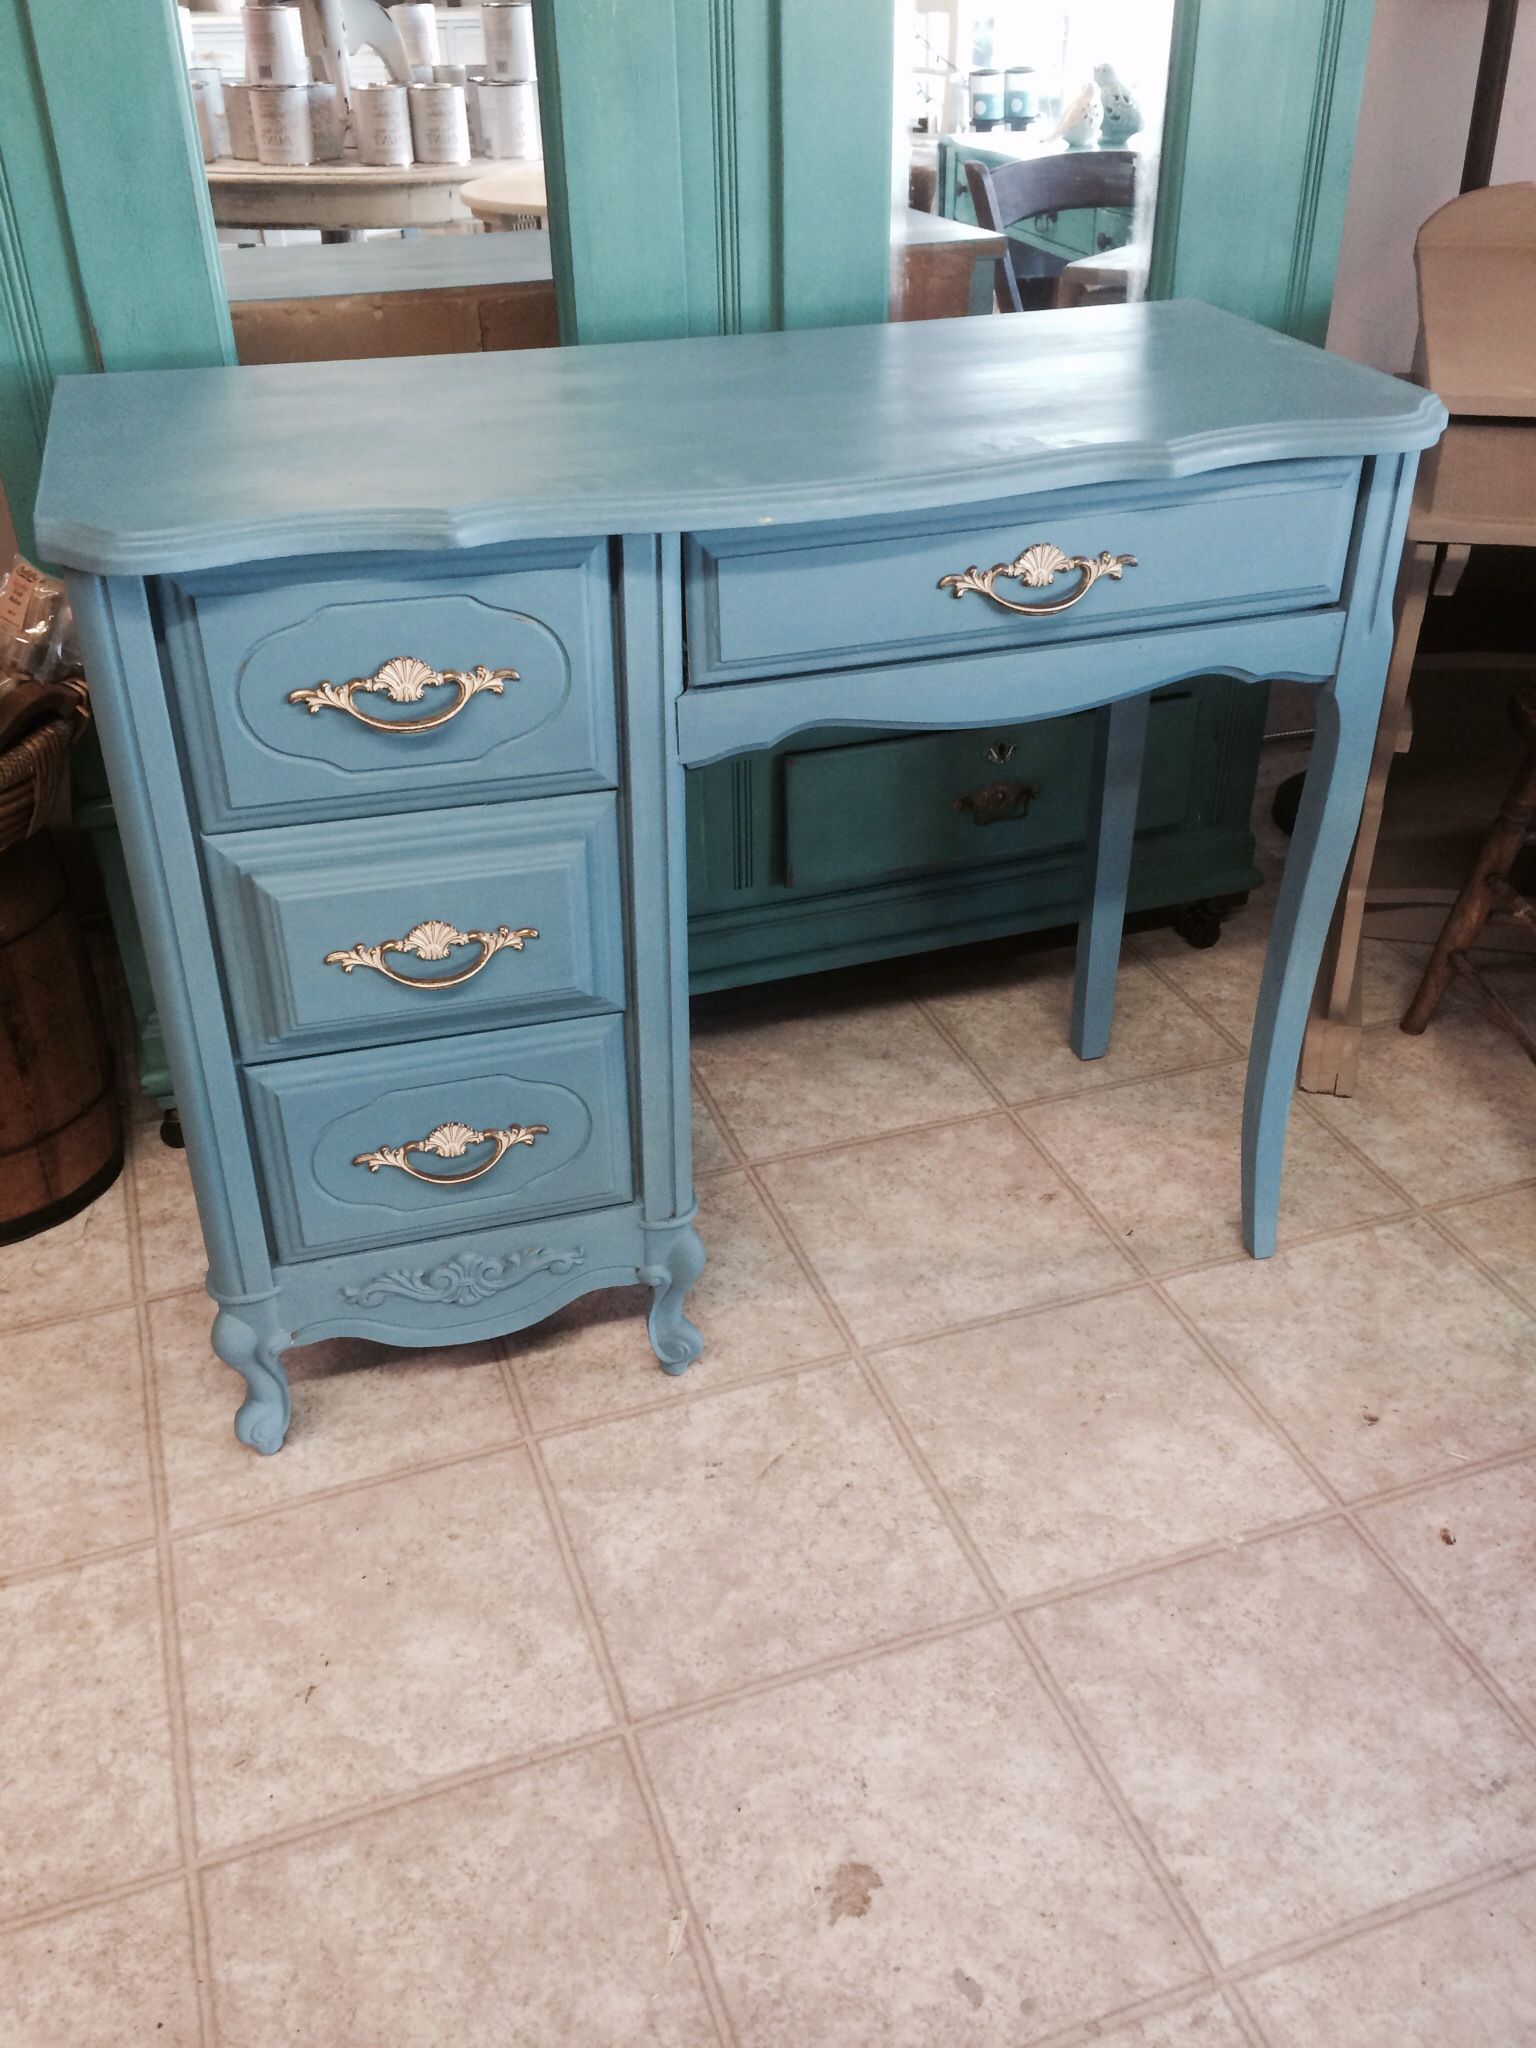 sewing desk sold table lamb info regard inspirations to deseta console with for antique small furnishings vintage blinds sale blue